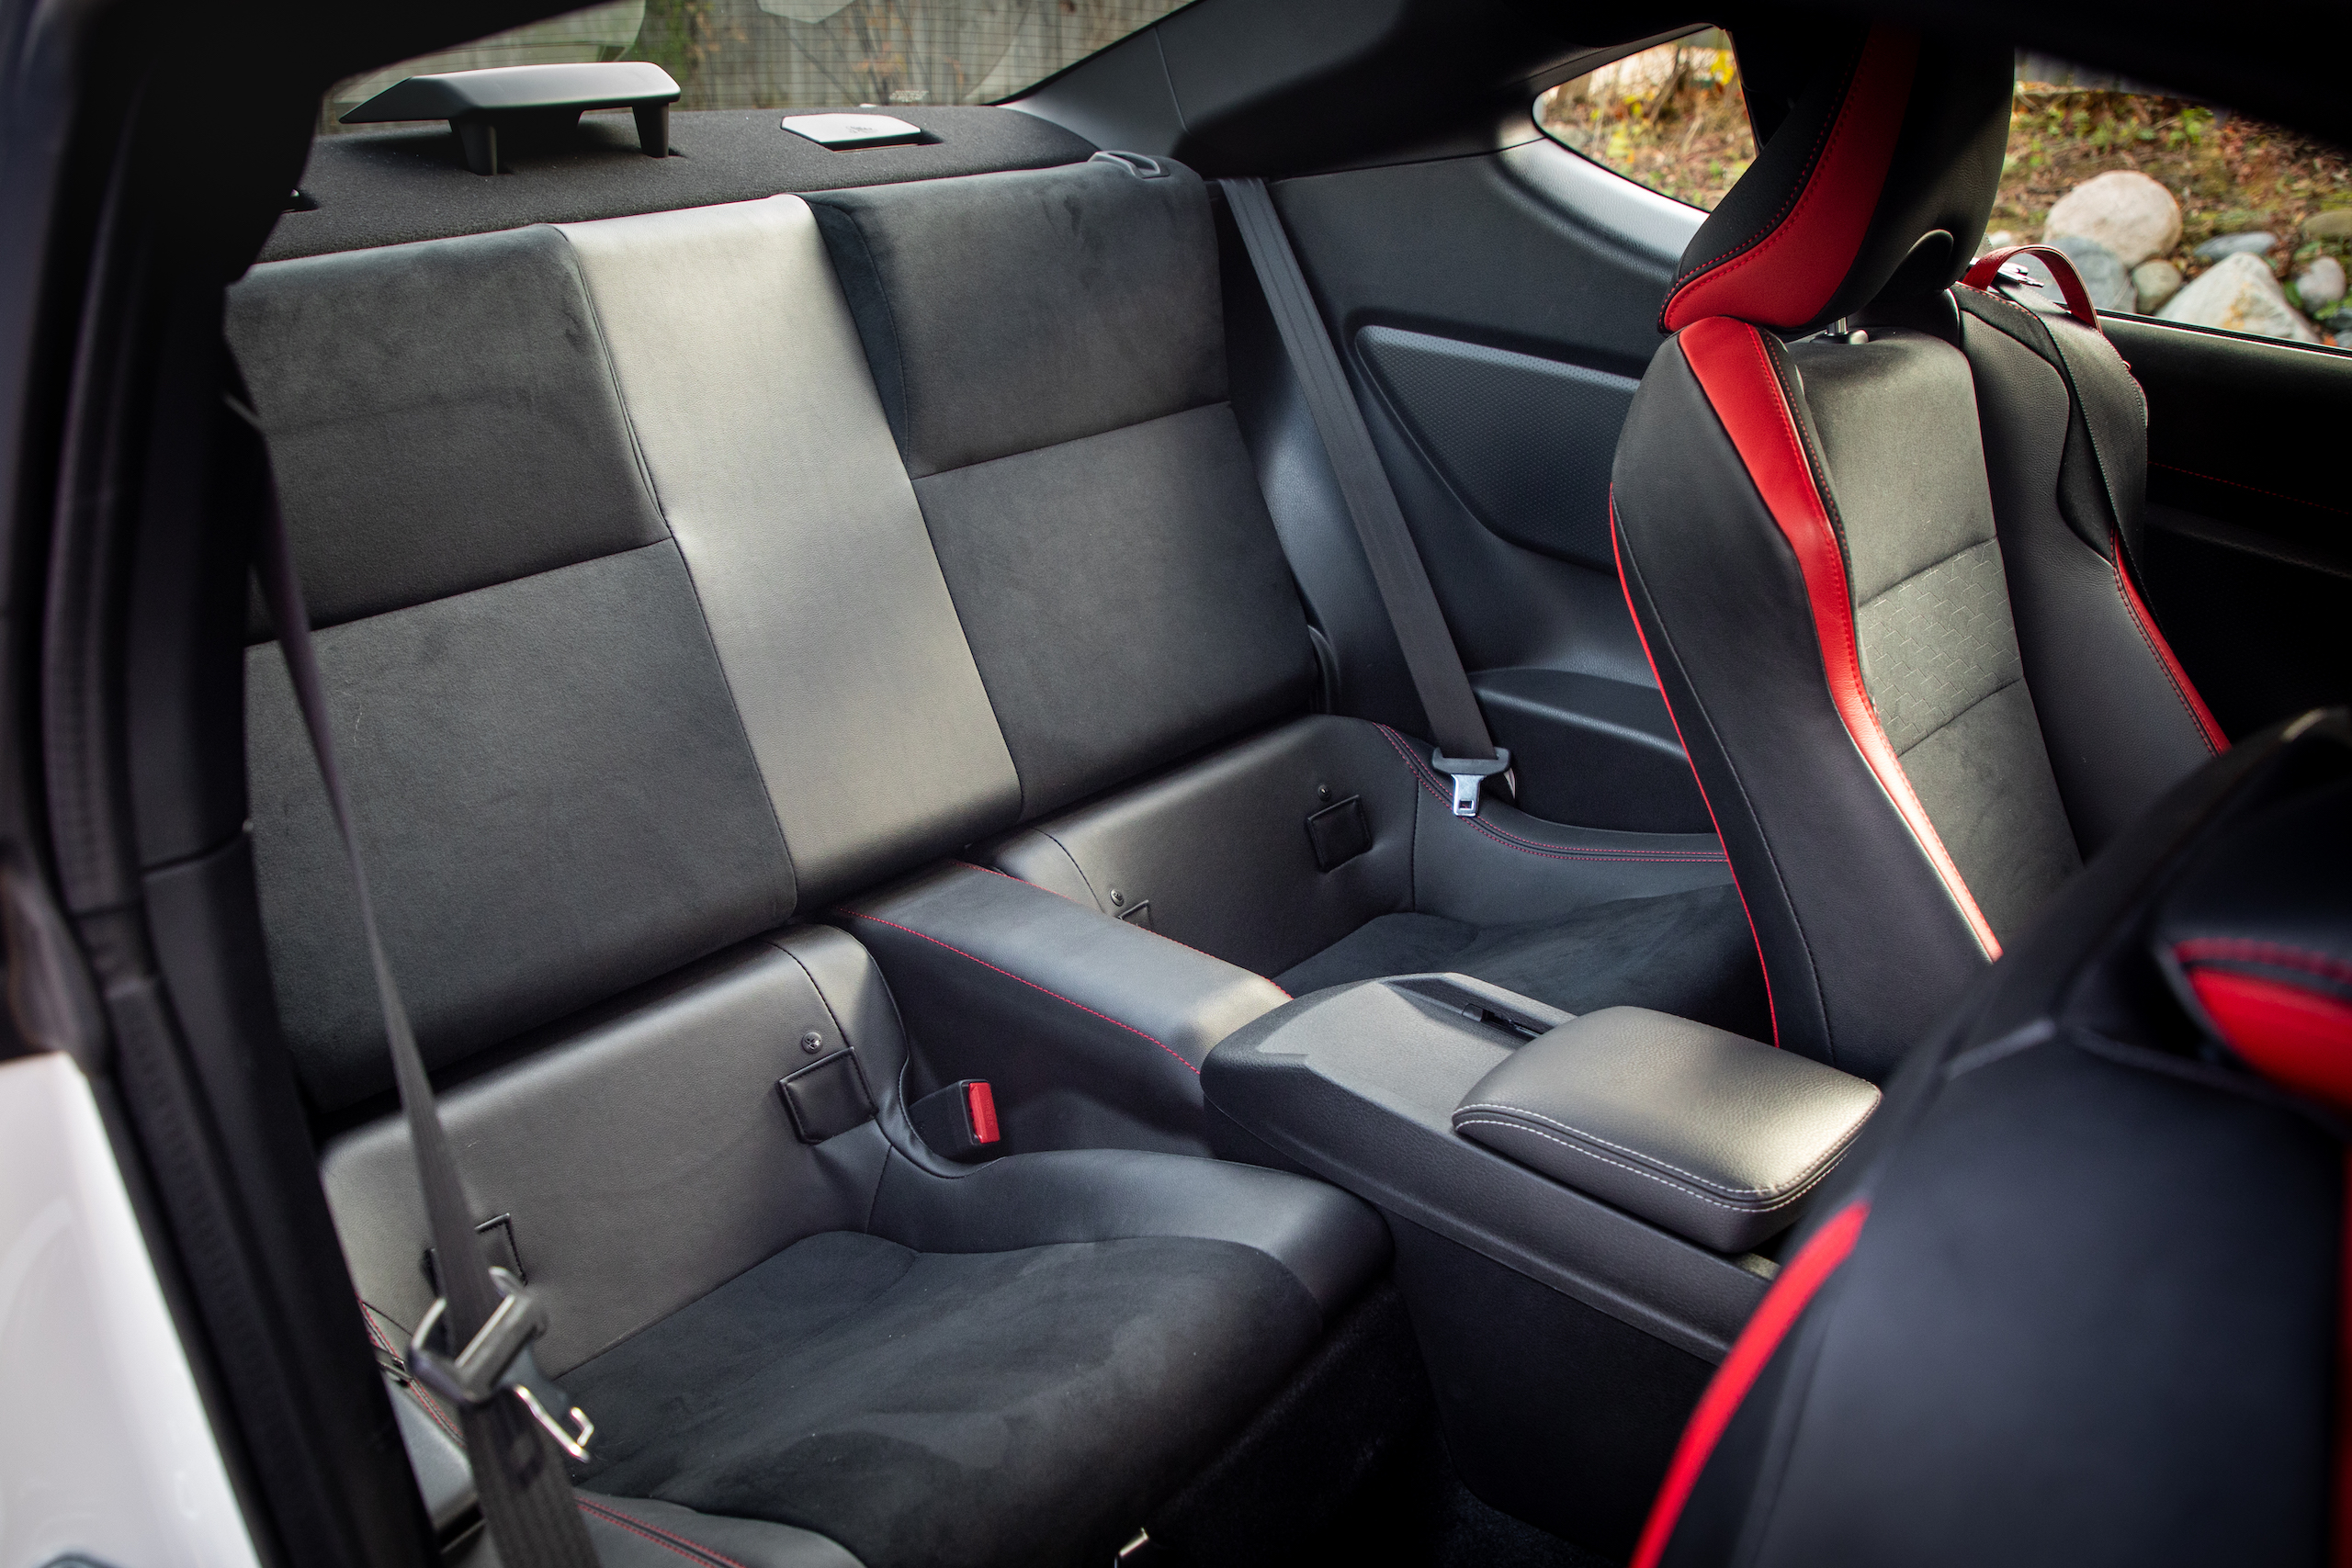 2020 Toyota 86 GT interior rear seat space